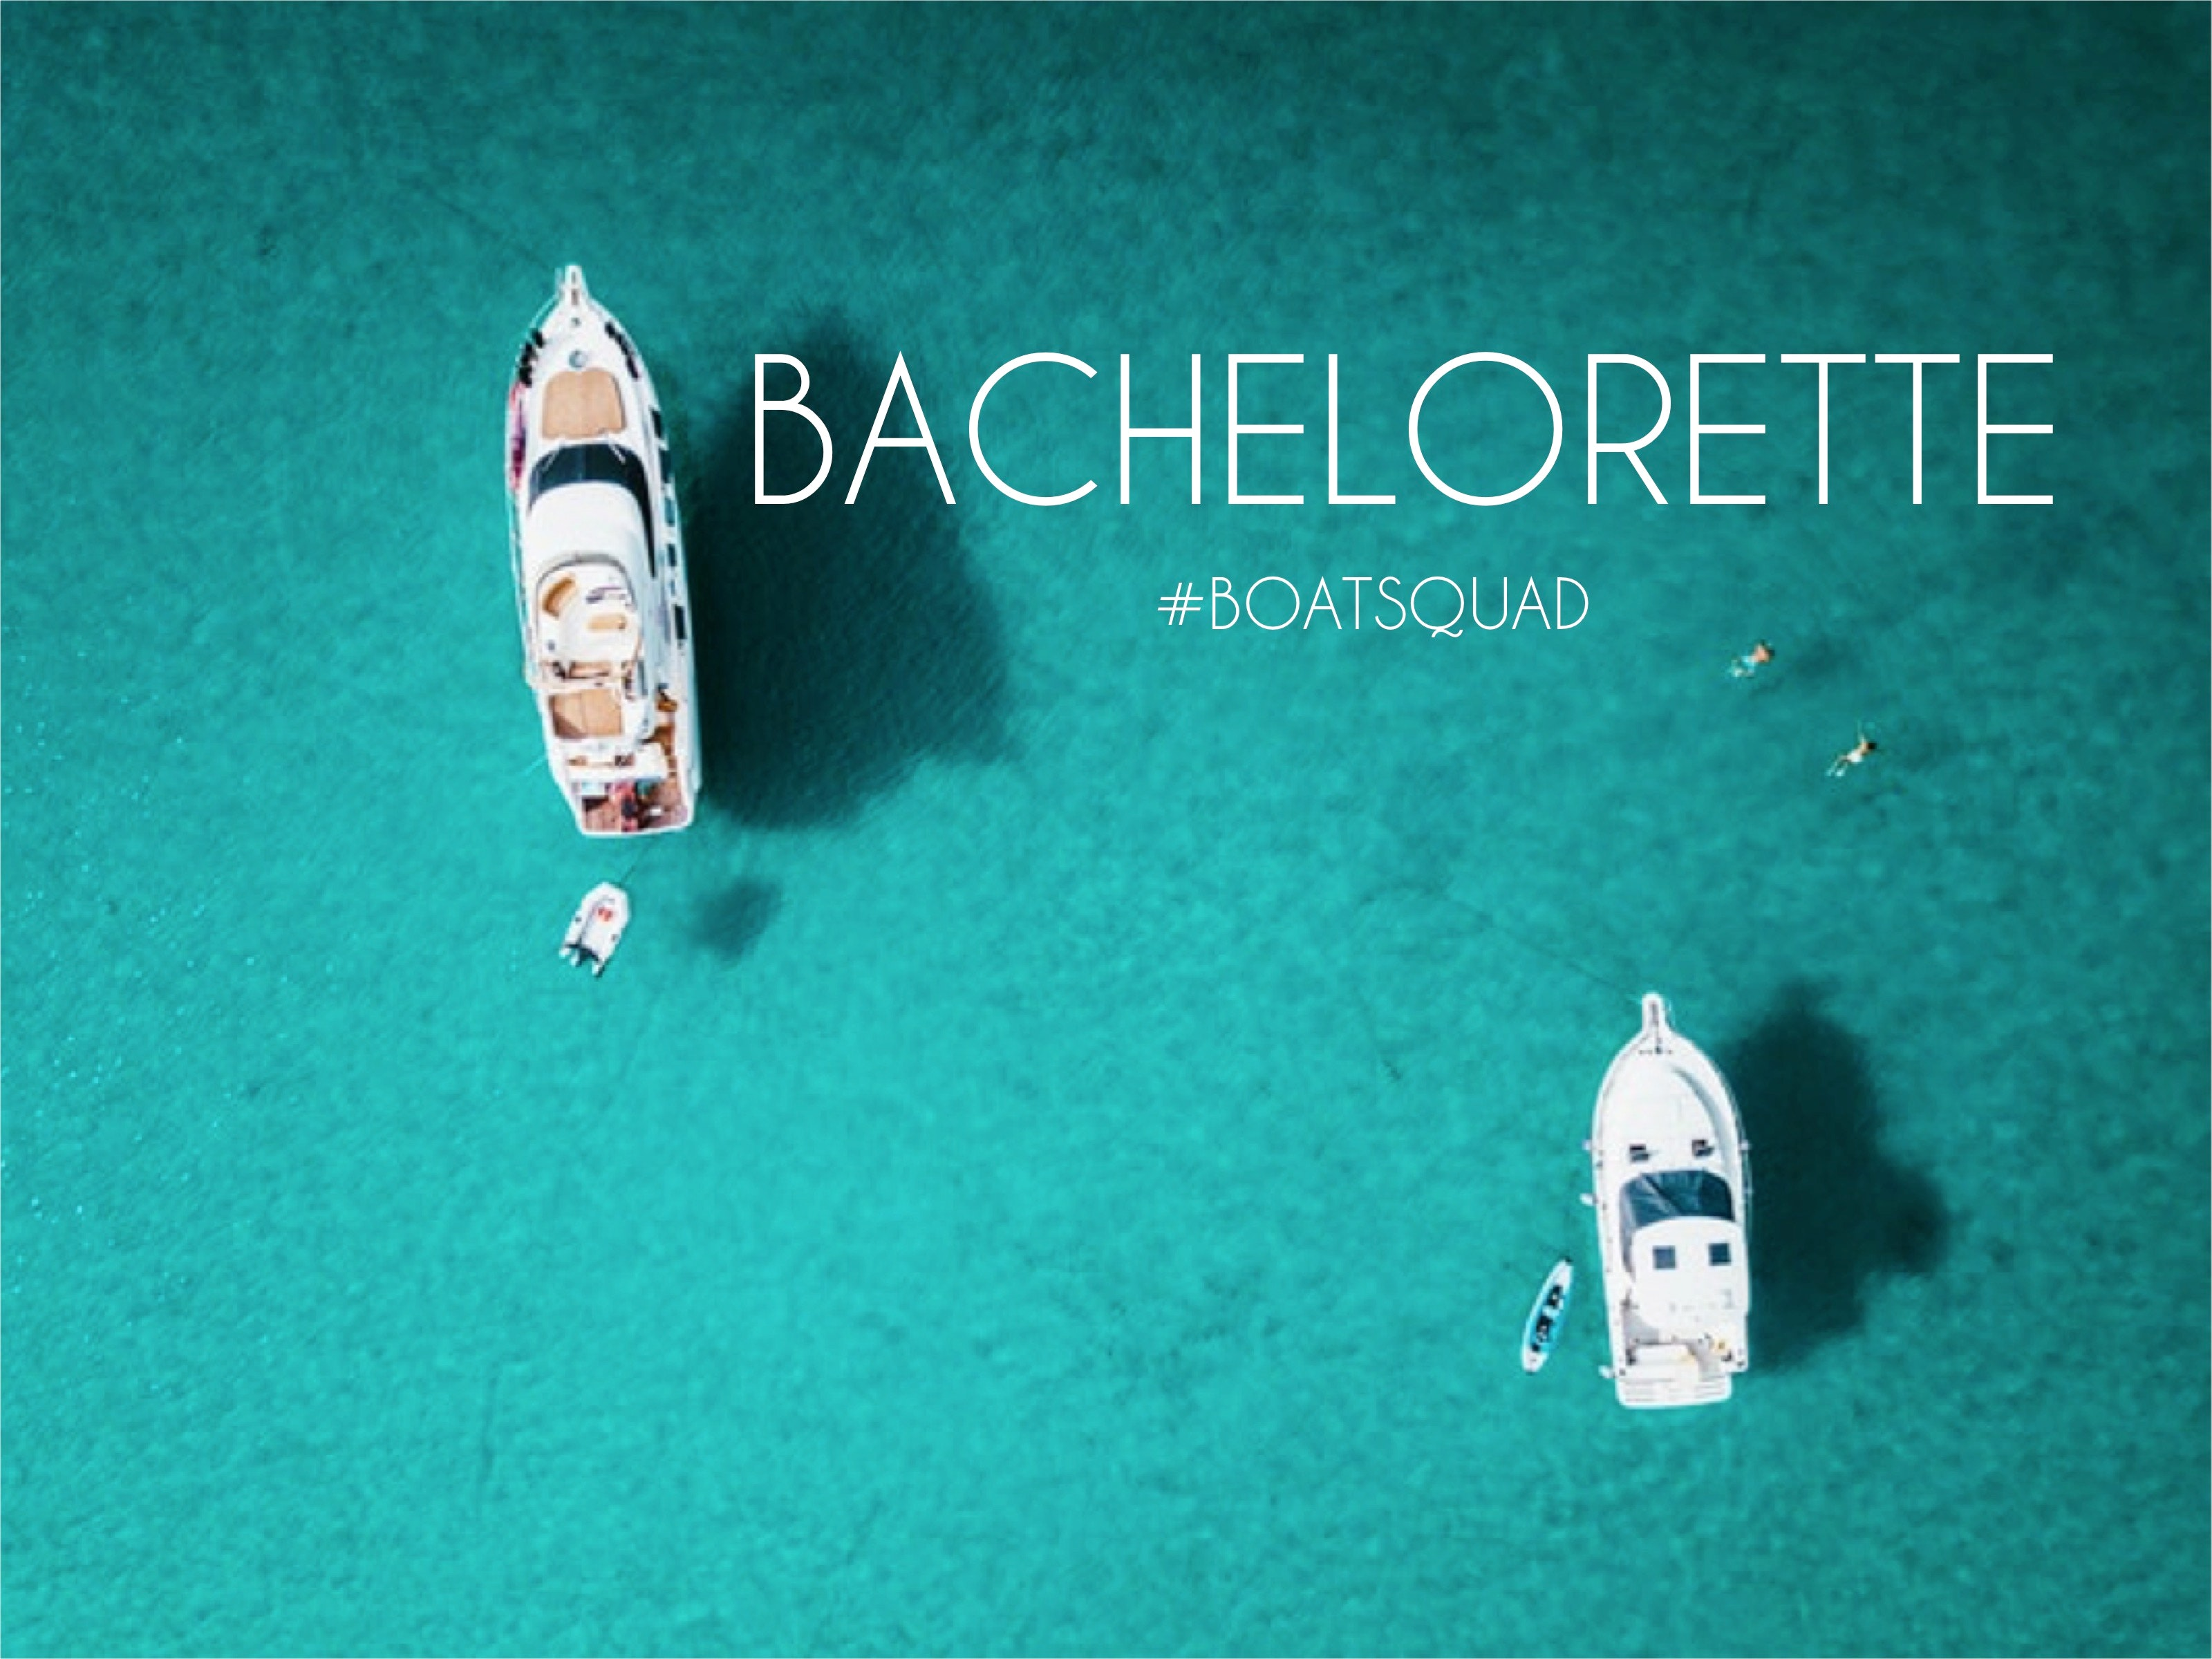 Bachelorette Party on a Boat